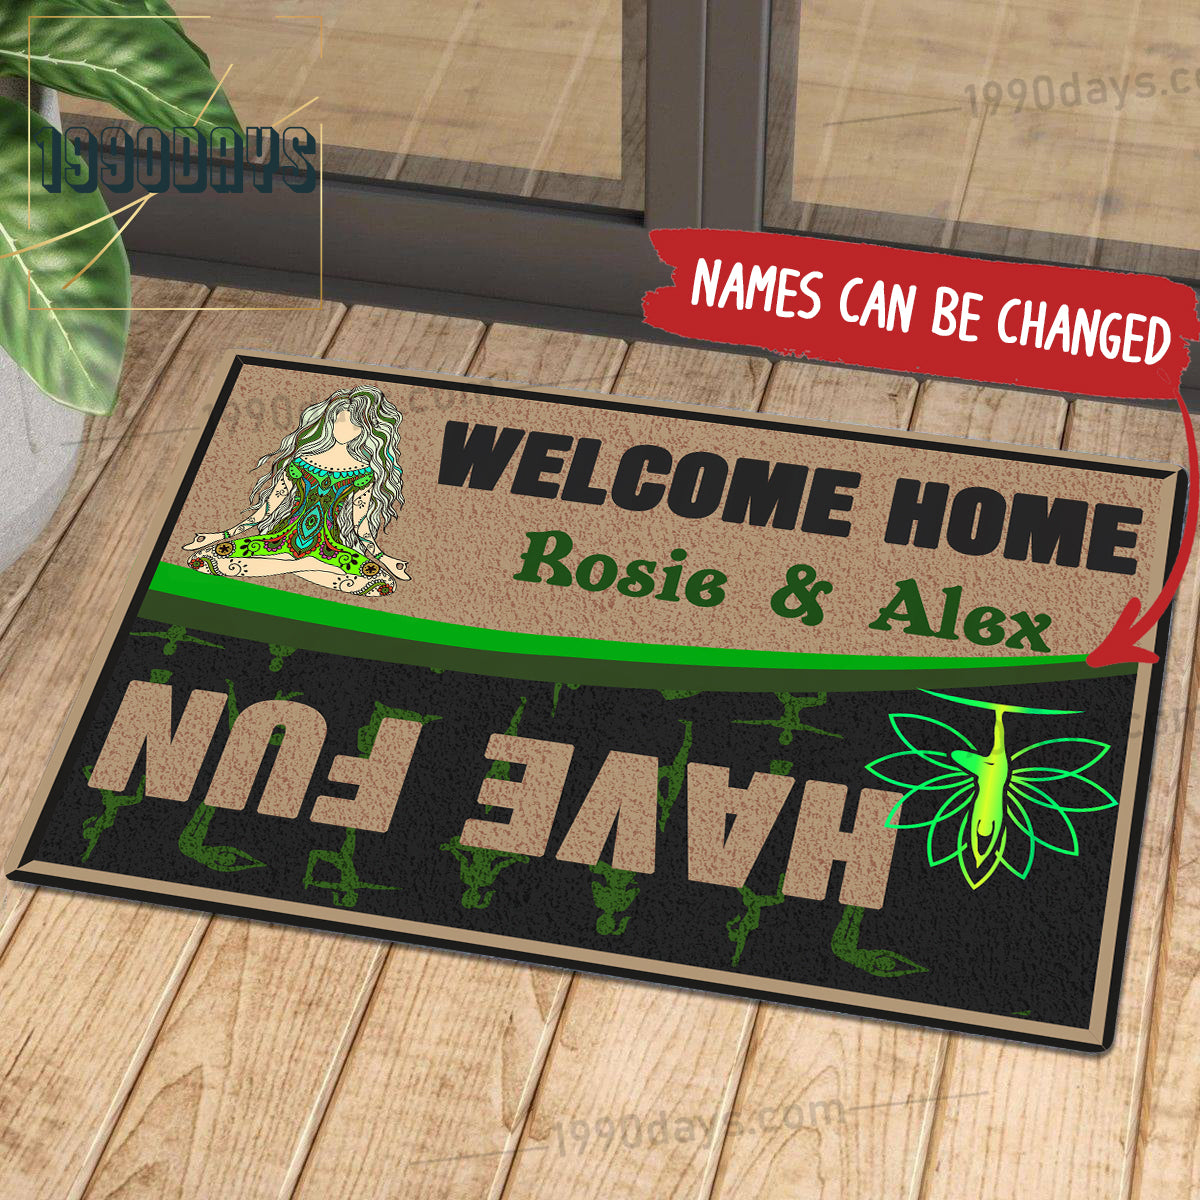 Welcome Home Have Fun Yoga Doormat Customize Your Name Black & White Green Indoor Outdoor Saint Patrick's Day Personalized Mat